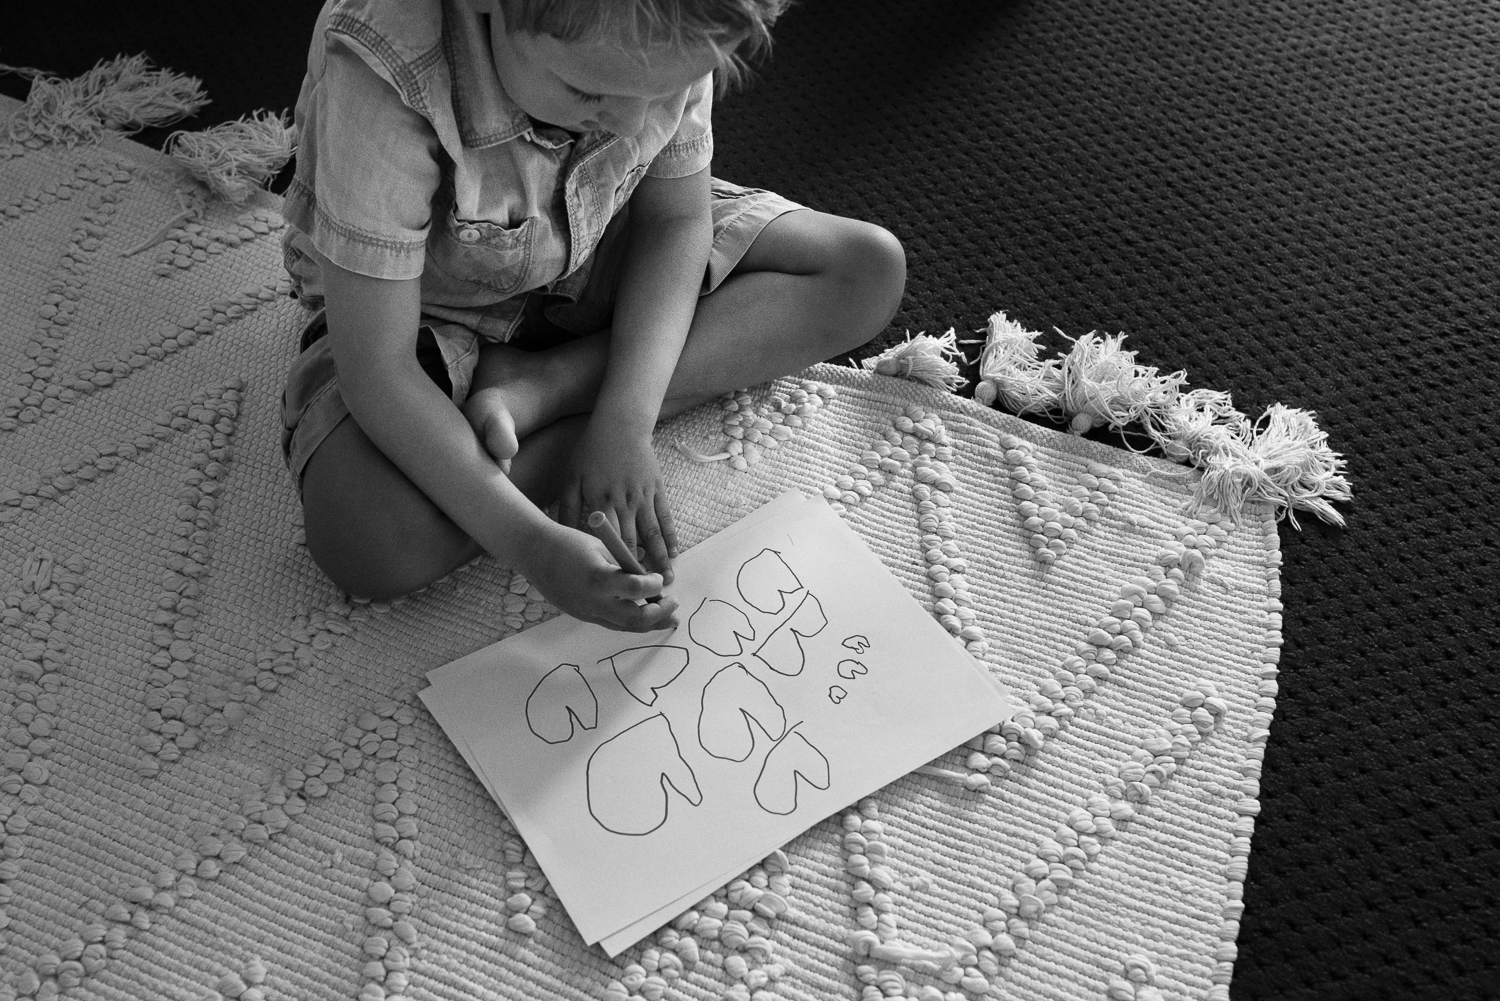 black and white image of young boy sitting cross legged on white rug learning to draw heart shapes on paper